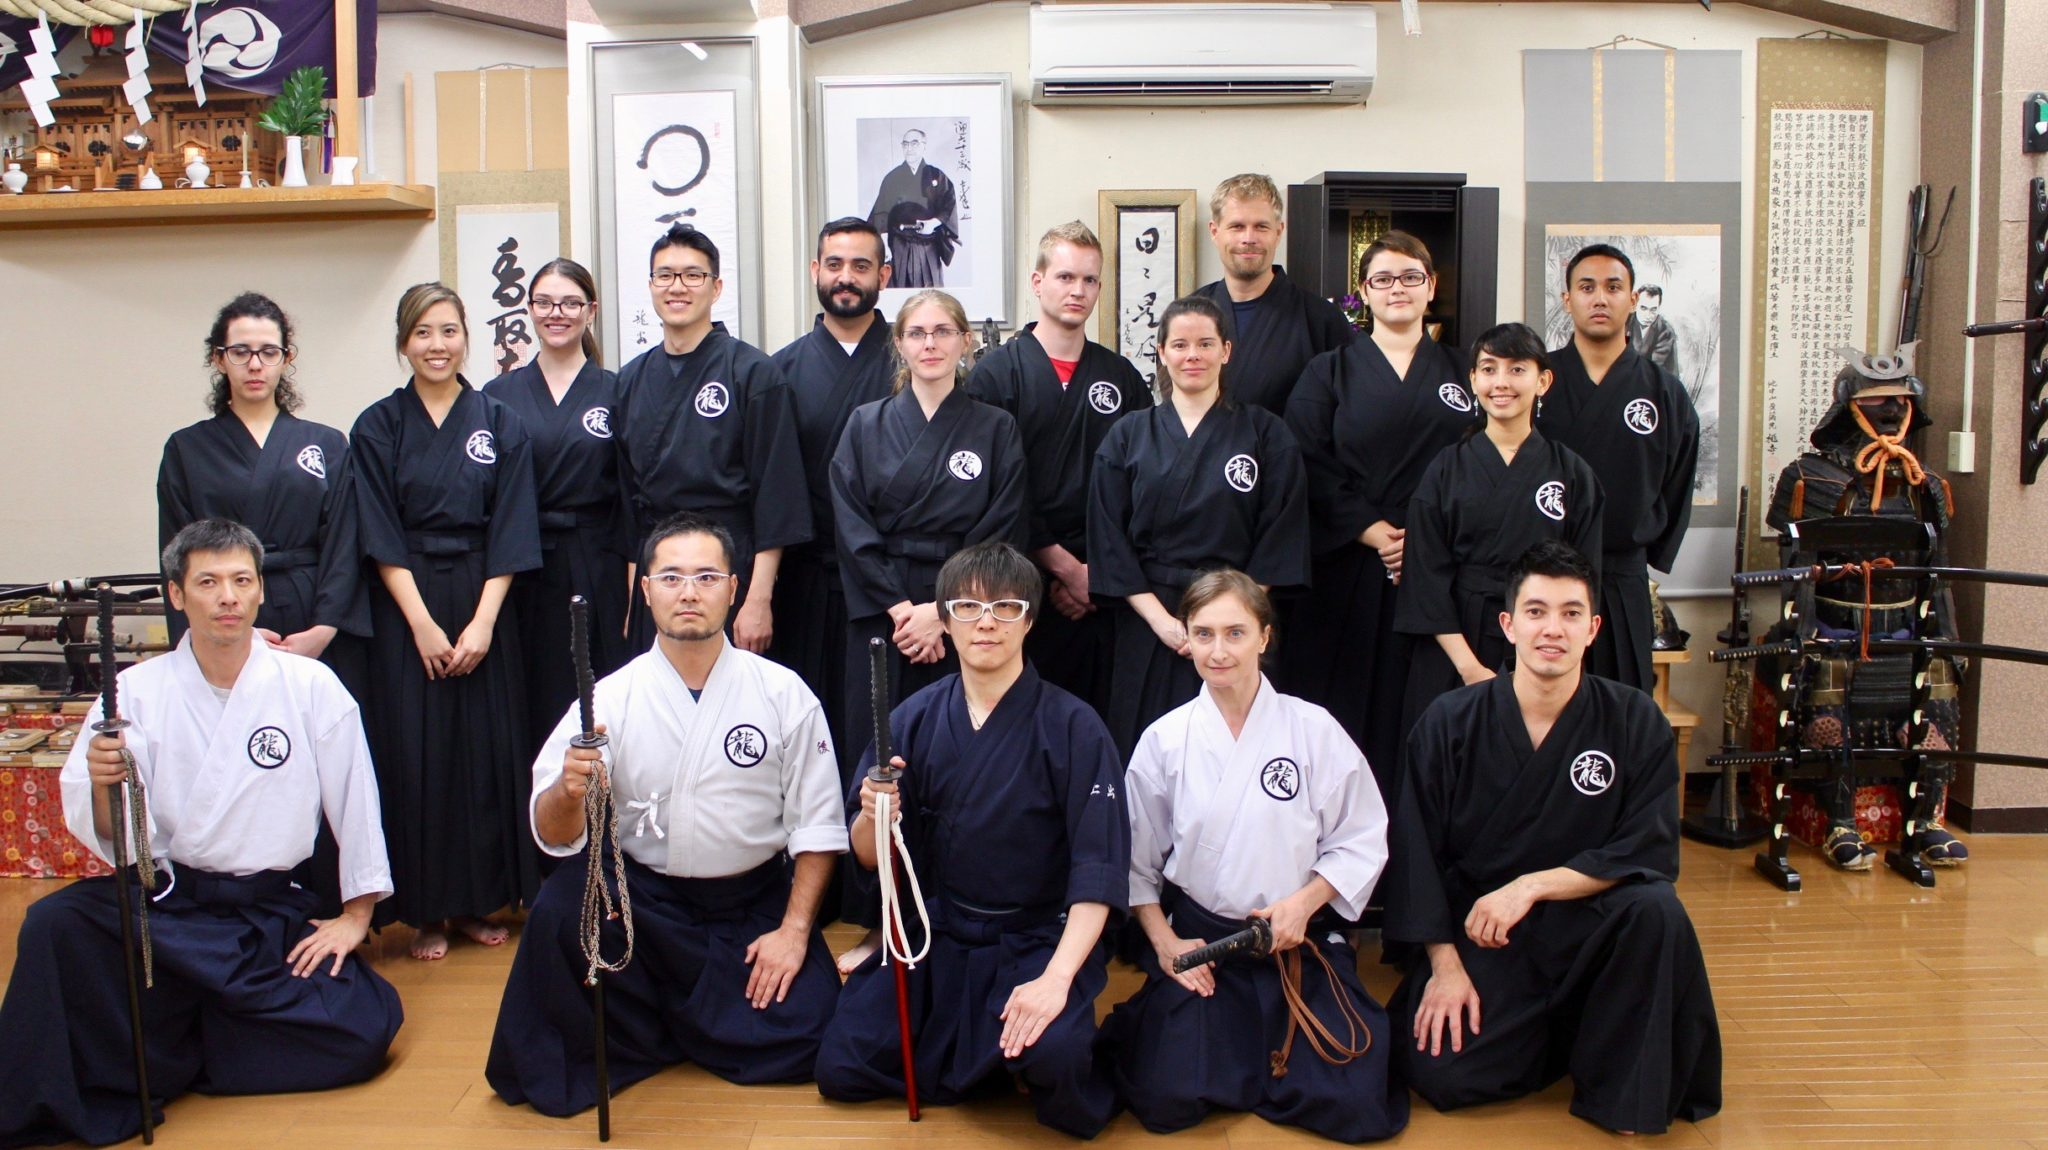 Coto Japanese Academy, Sword Experience, Picture, Photo, image